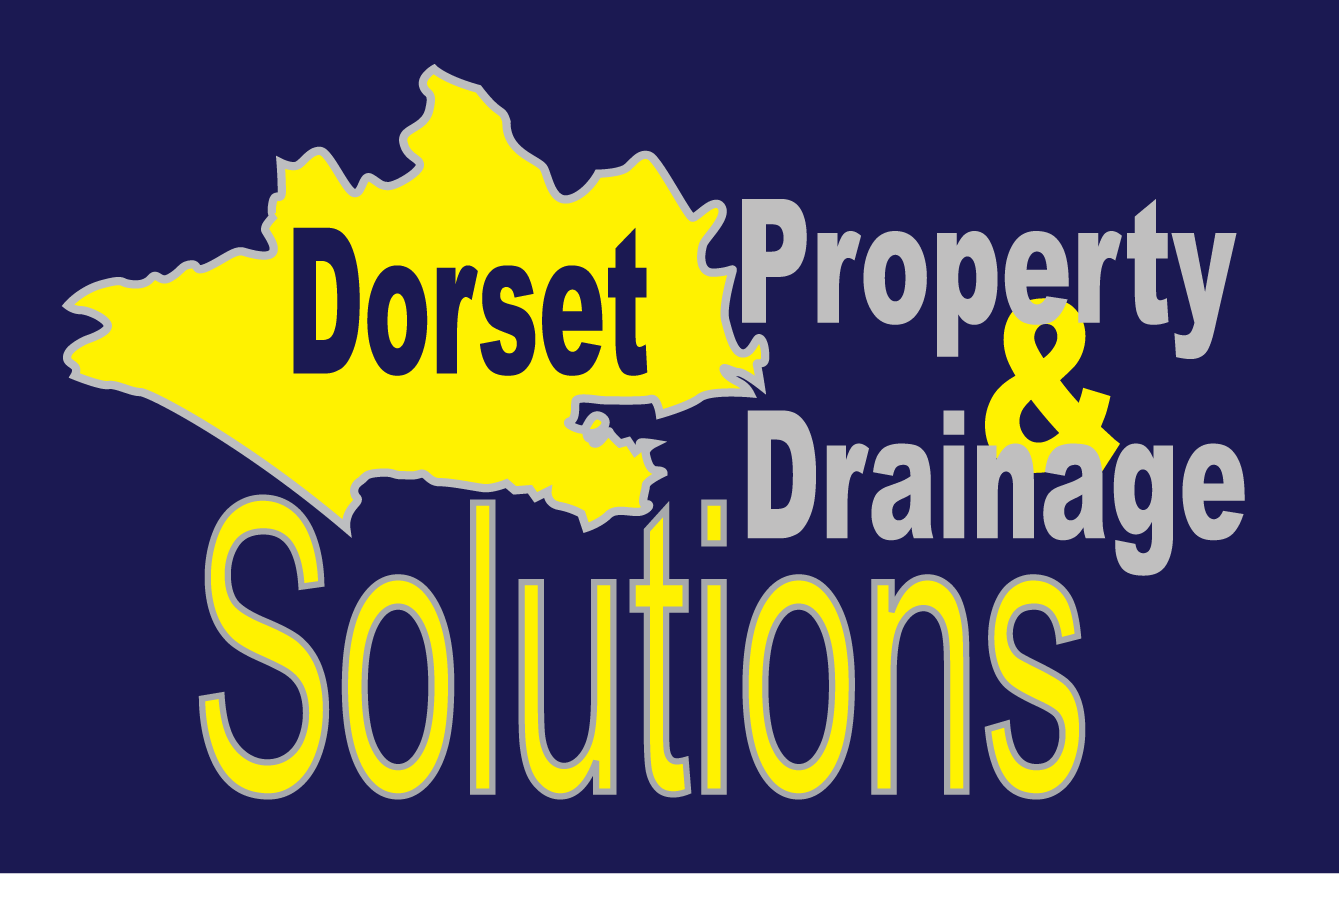 Dorset Property and Drainage Solutions logo